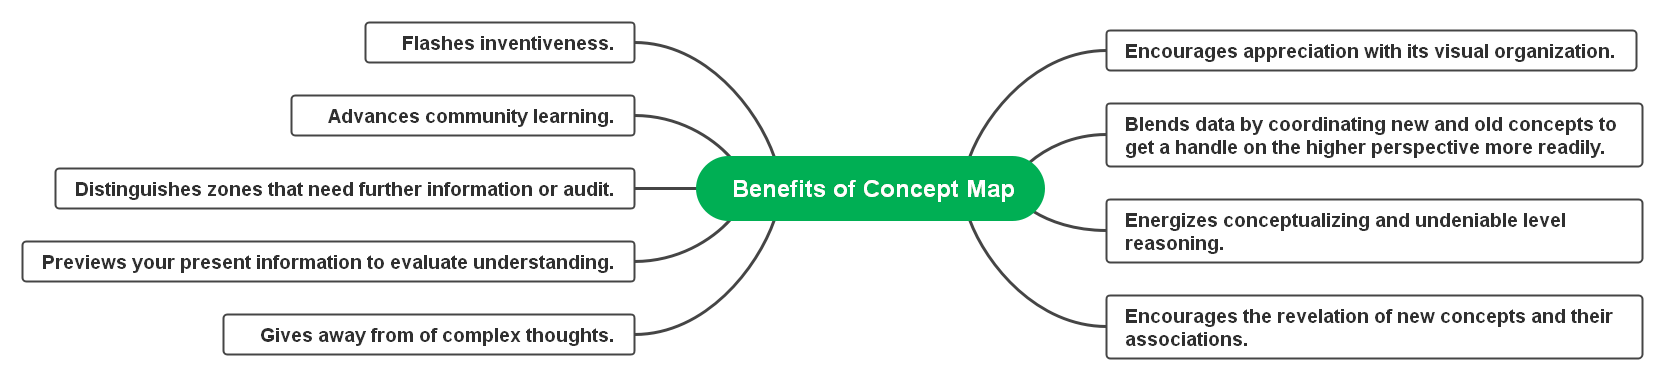 benefits of concept map